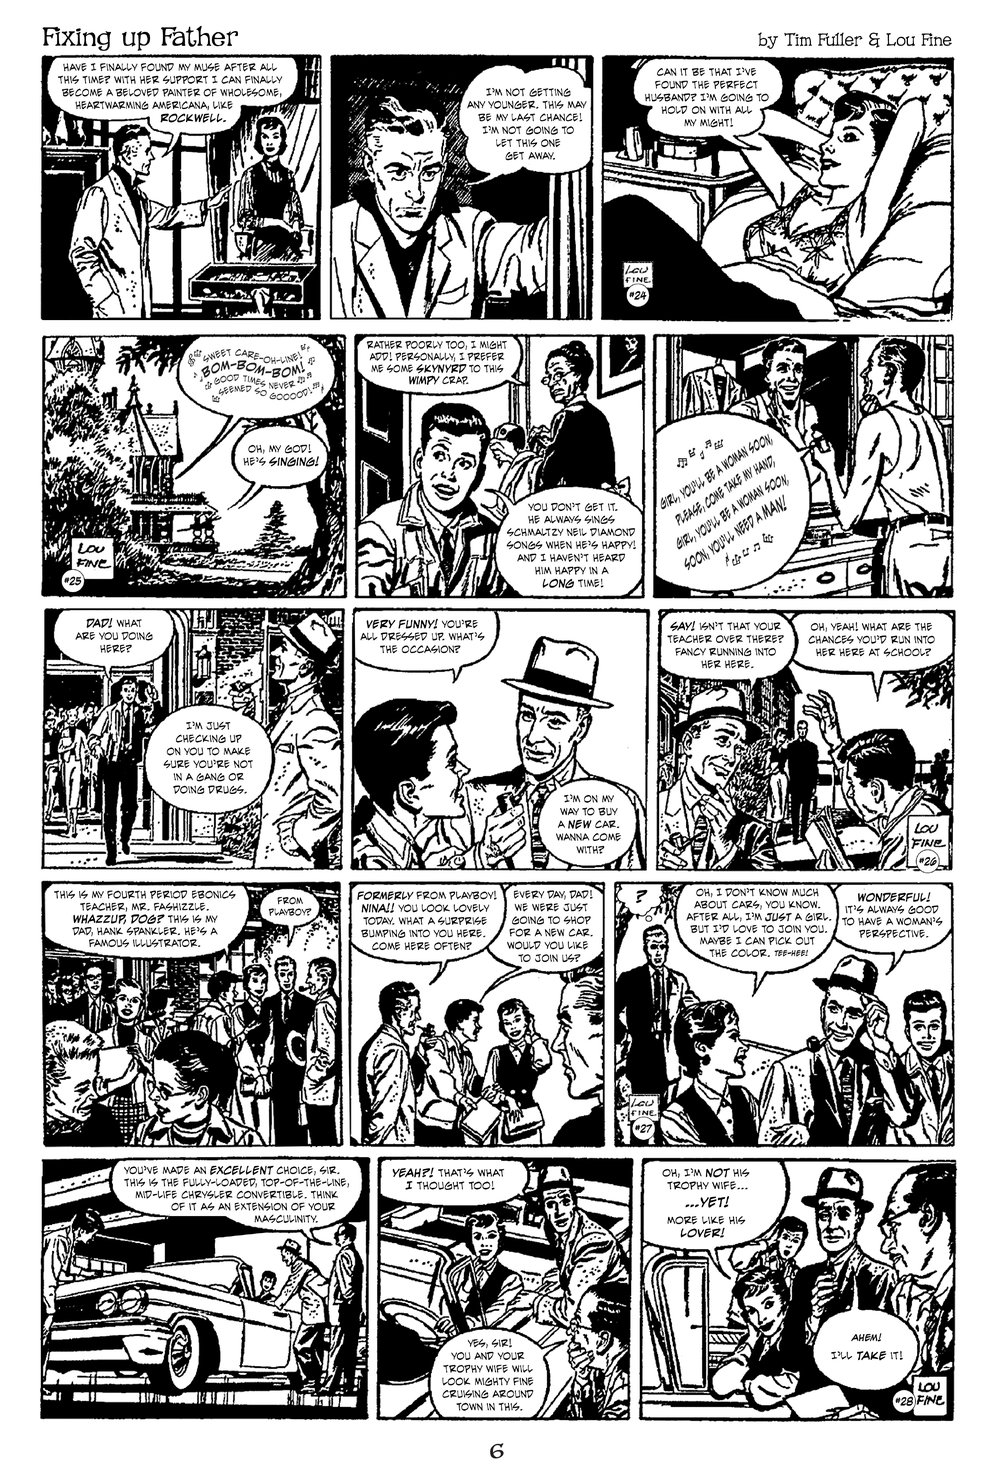 Weekly Sham #1-7 (Fixing Up Father)-6.jpg